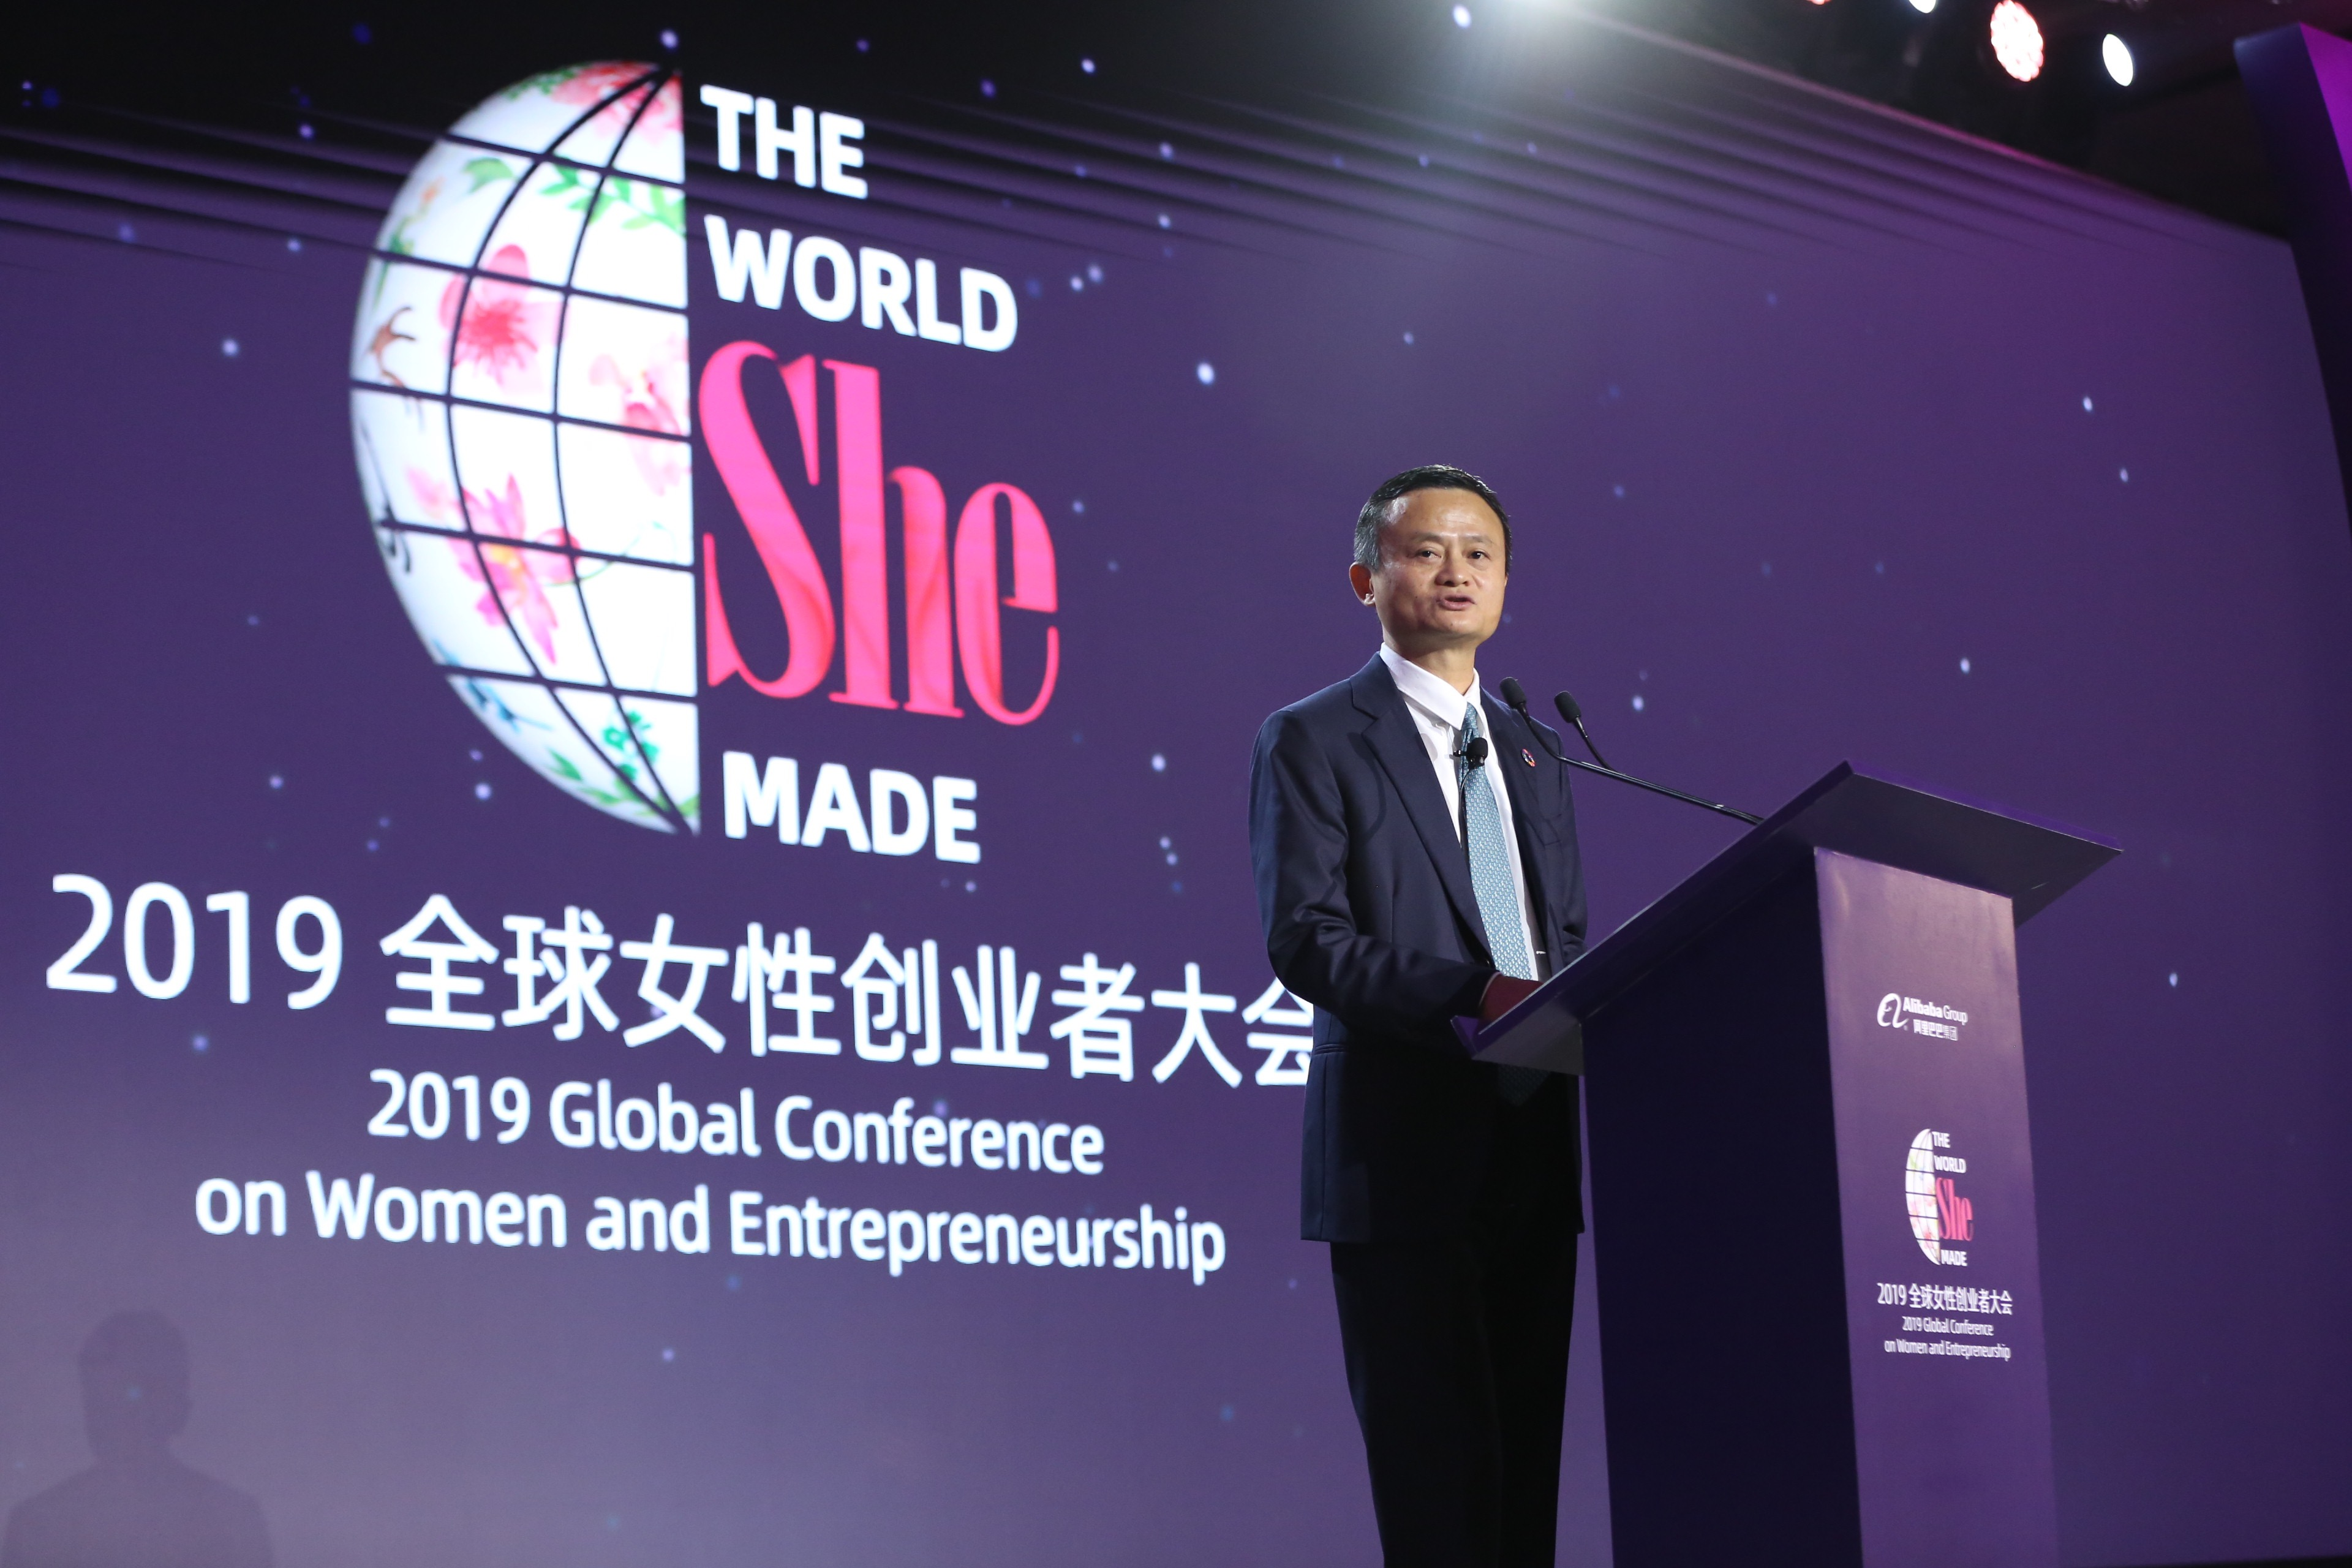 Jack at womens conference_08282019